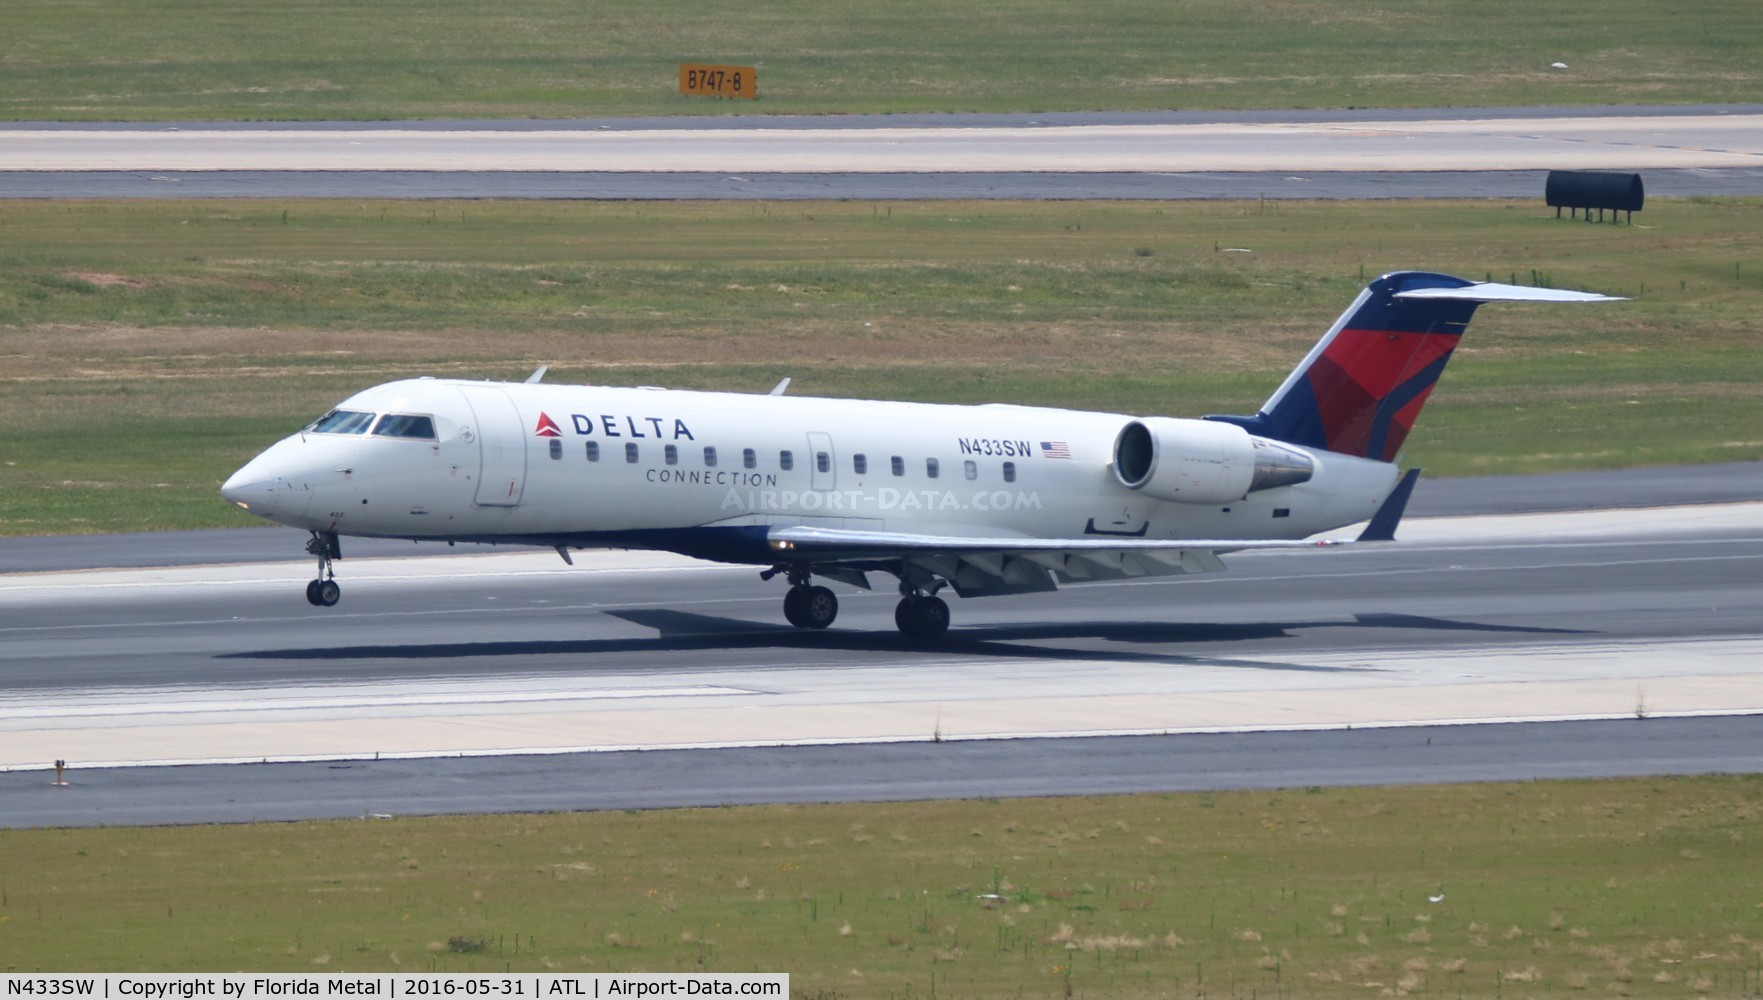 N433SW, 2001 Bombardier CRJ-200LR (CL-600-2B19) C/N 7550, Delta Connection